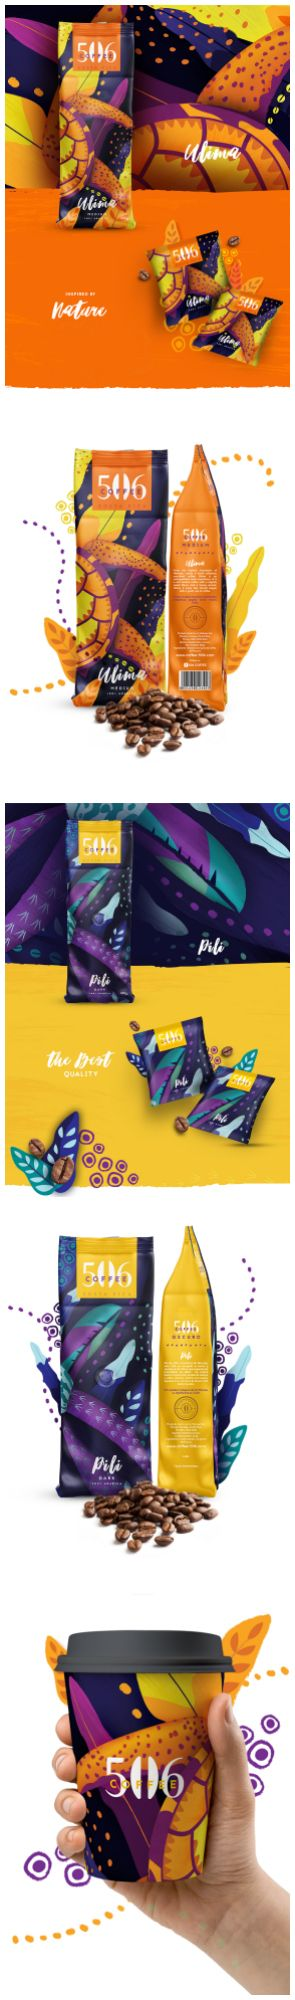 Branded Packaging Design for Vibrant Costa Rica Coffee Brand Design Agency: Daniela Jiménez Brand / Project Name: 506 coffee Location: Costa Rica Category: #coffee #drinks #beverages  World Brand & Packaging Design Society